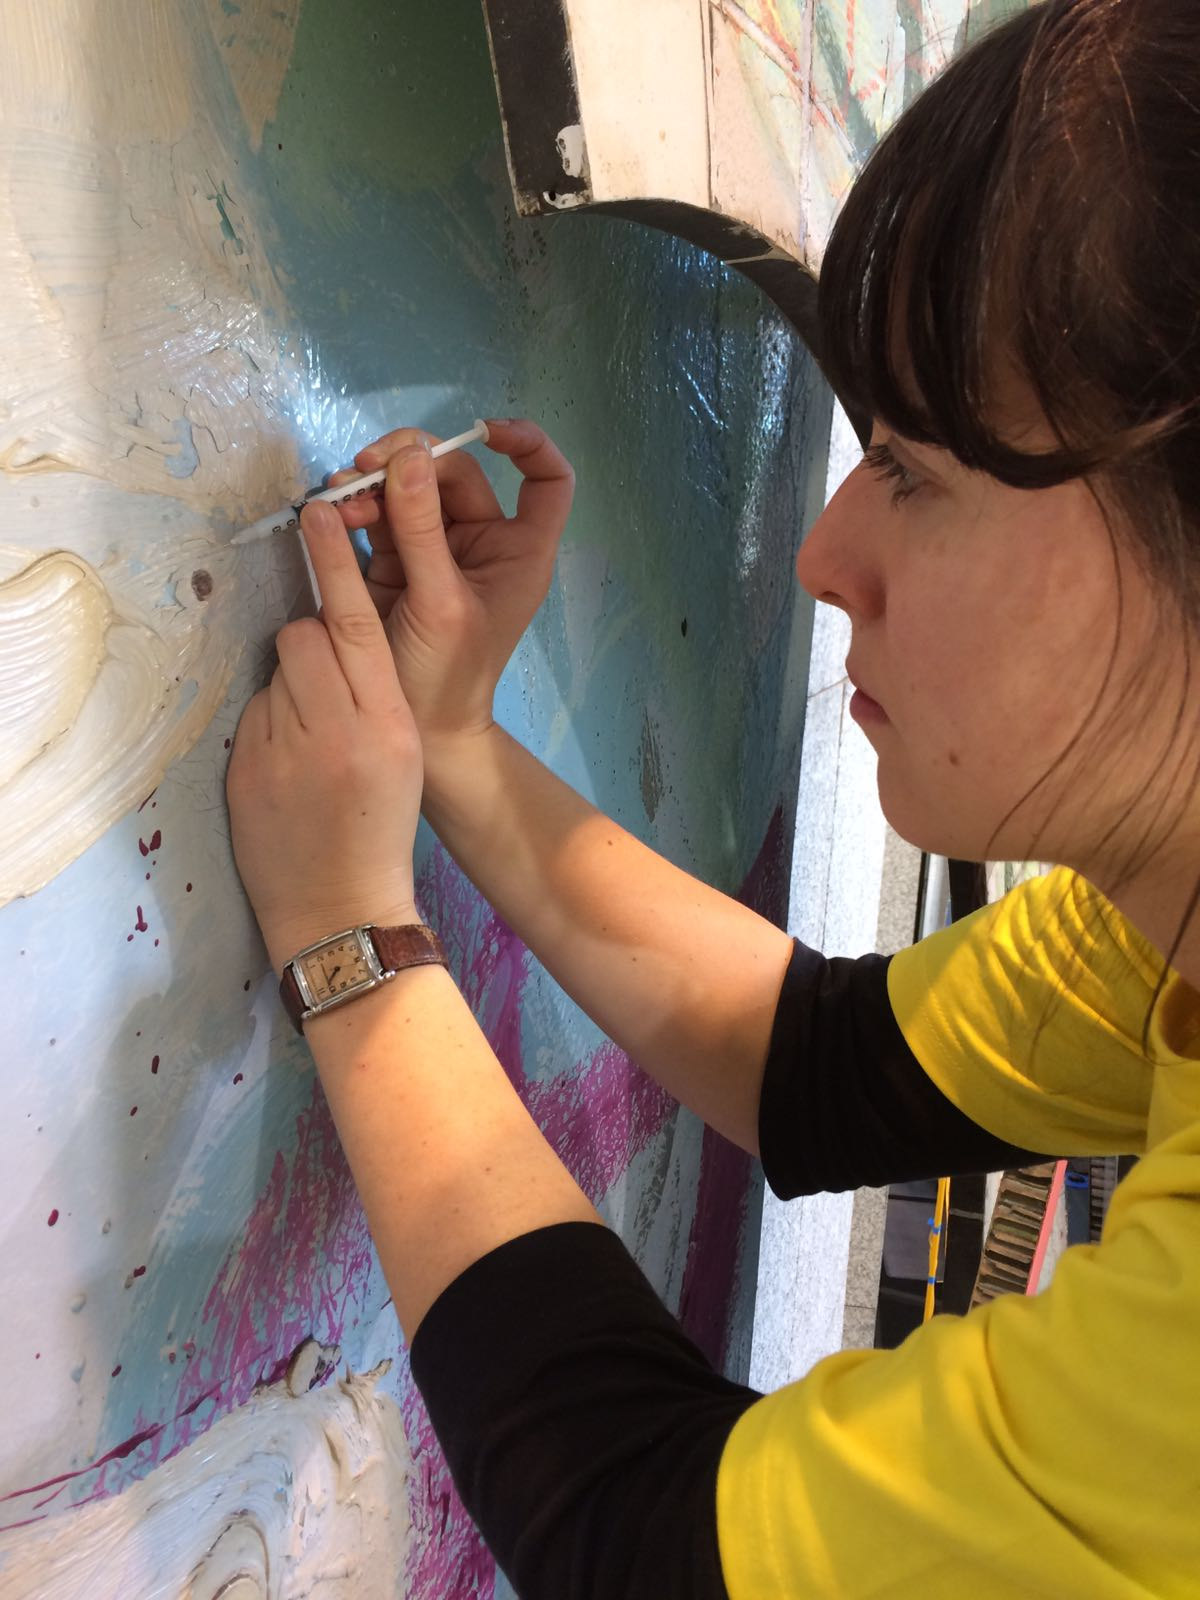 Consolidating flaking paint with a syringe